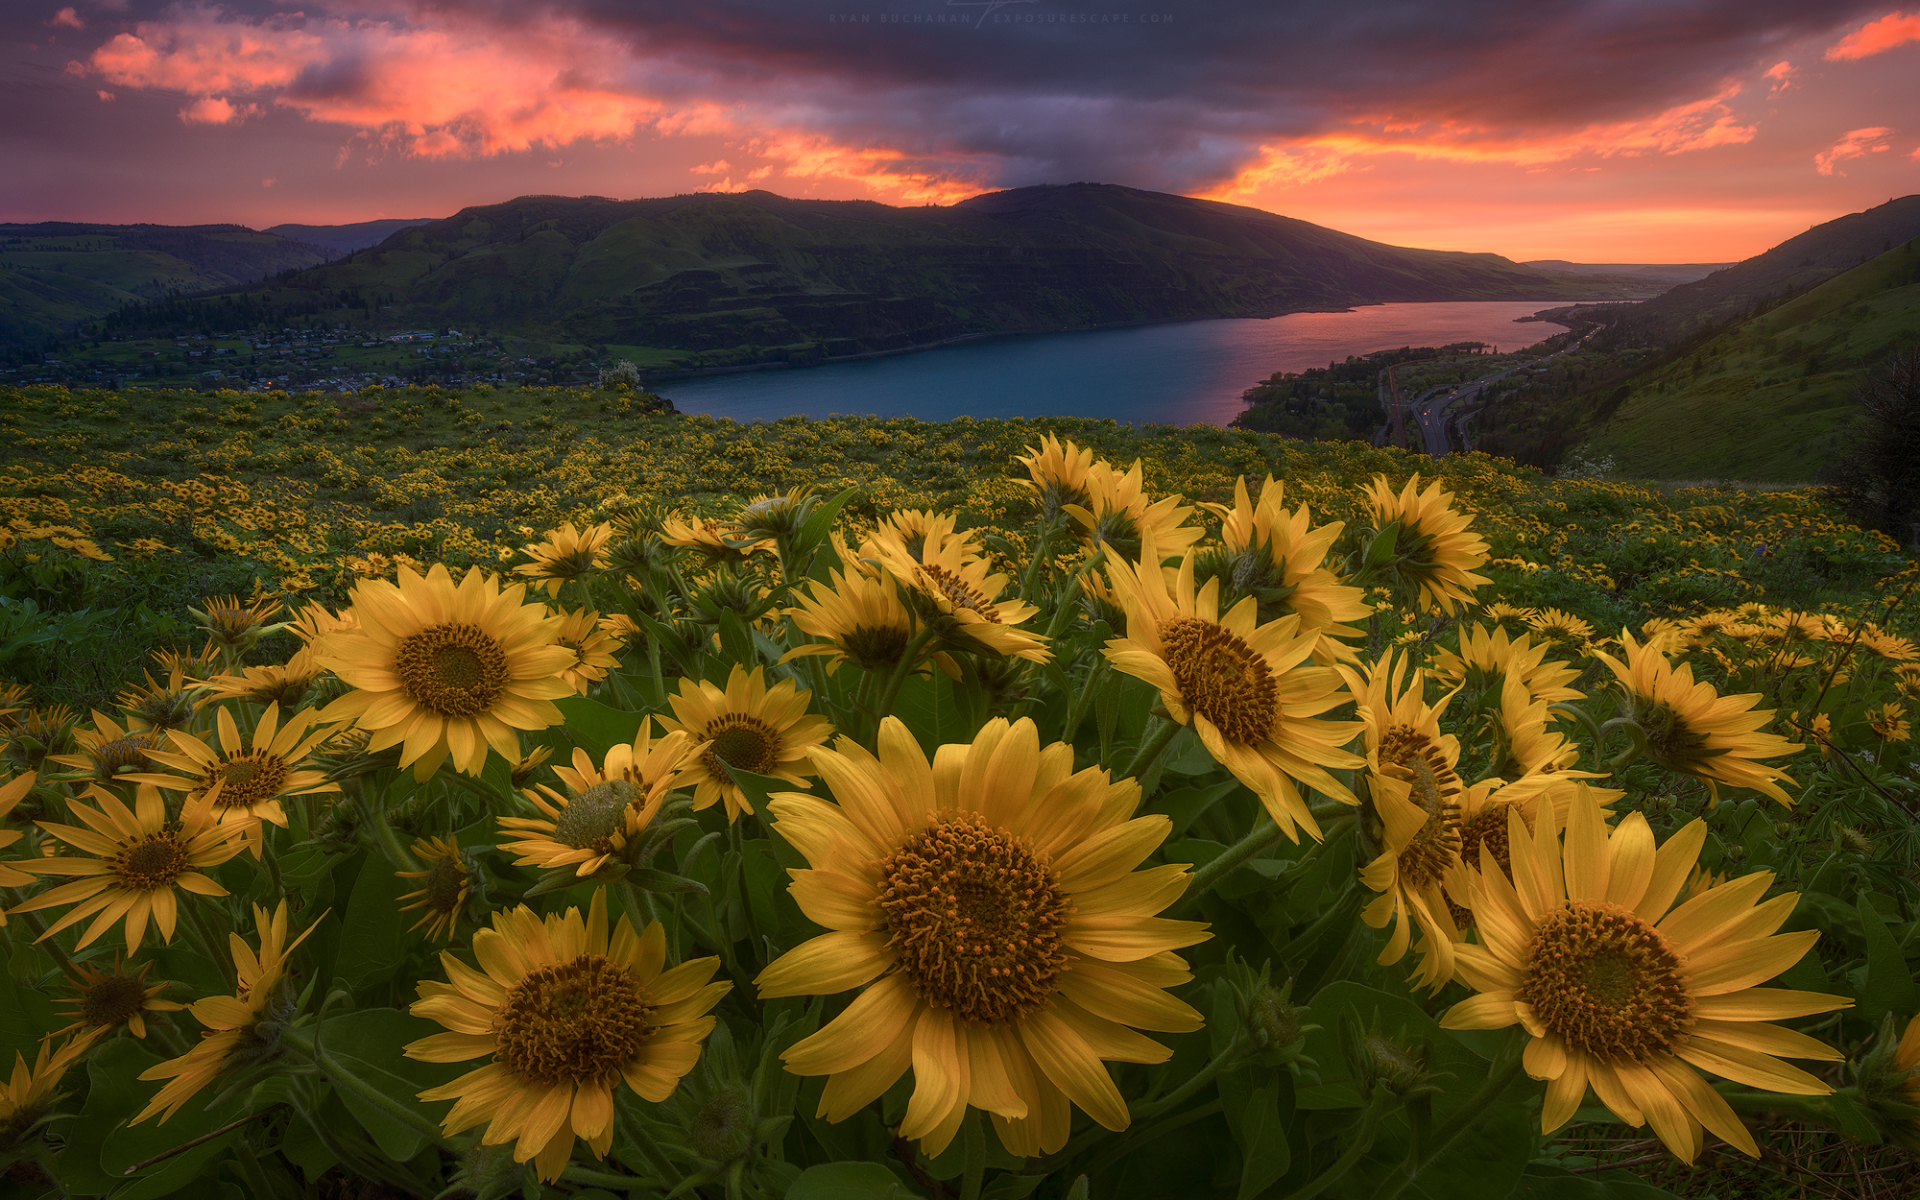 Animated Wallpaper For Tablet Perfect Sun Flowers River Dusk Wallpapers Perfect Sun